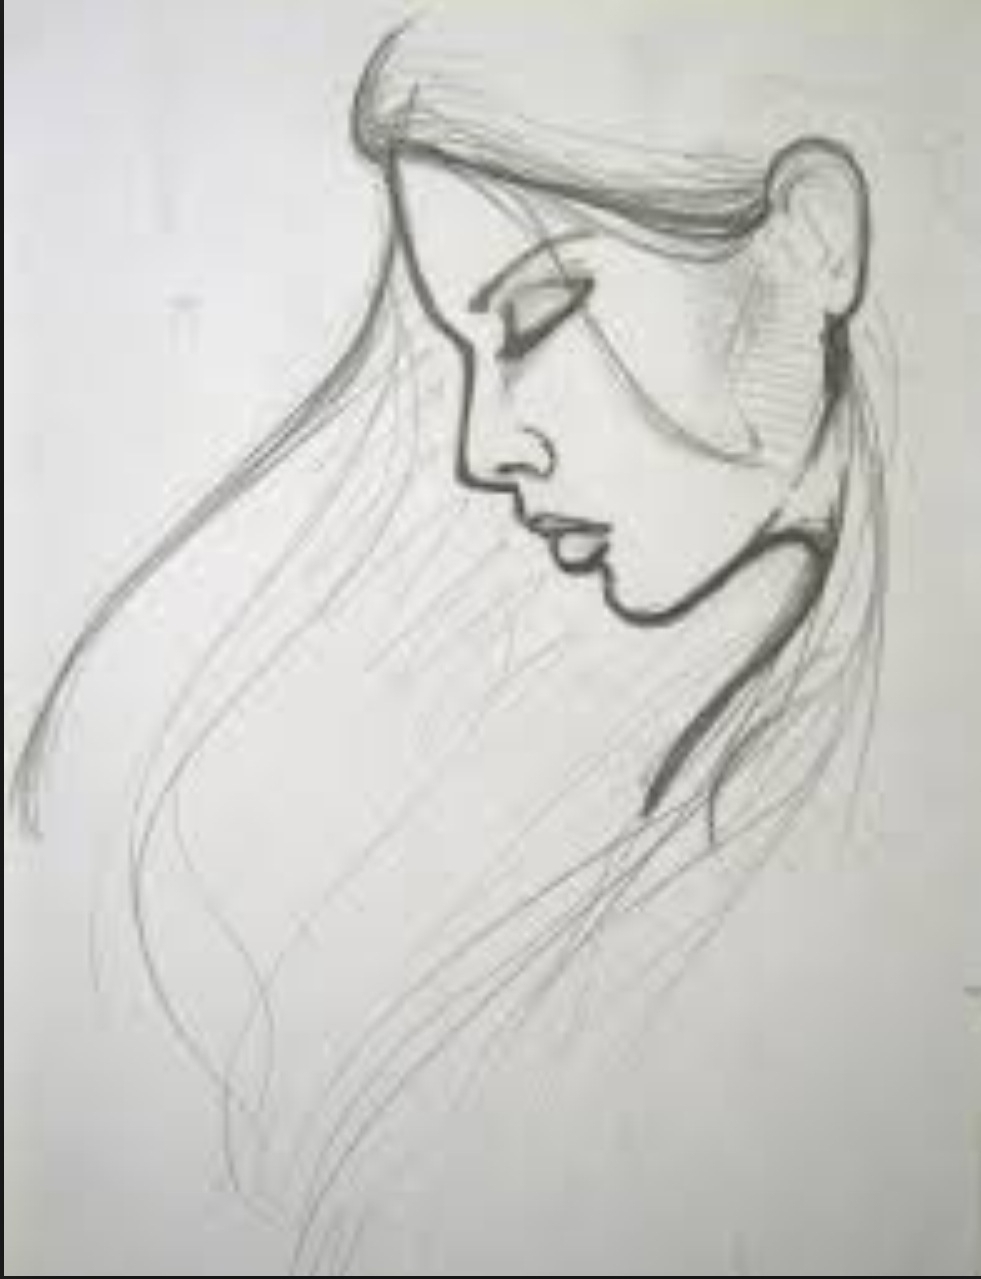 Pencil Sketches For Beginners at PaintingValley.com ...